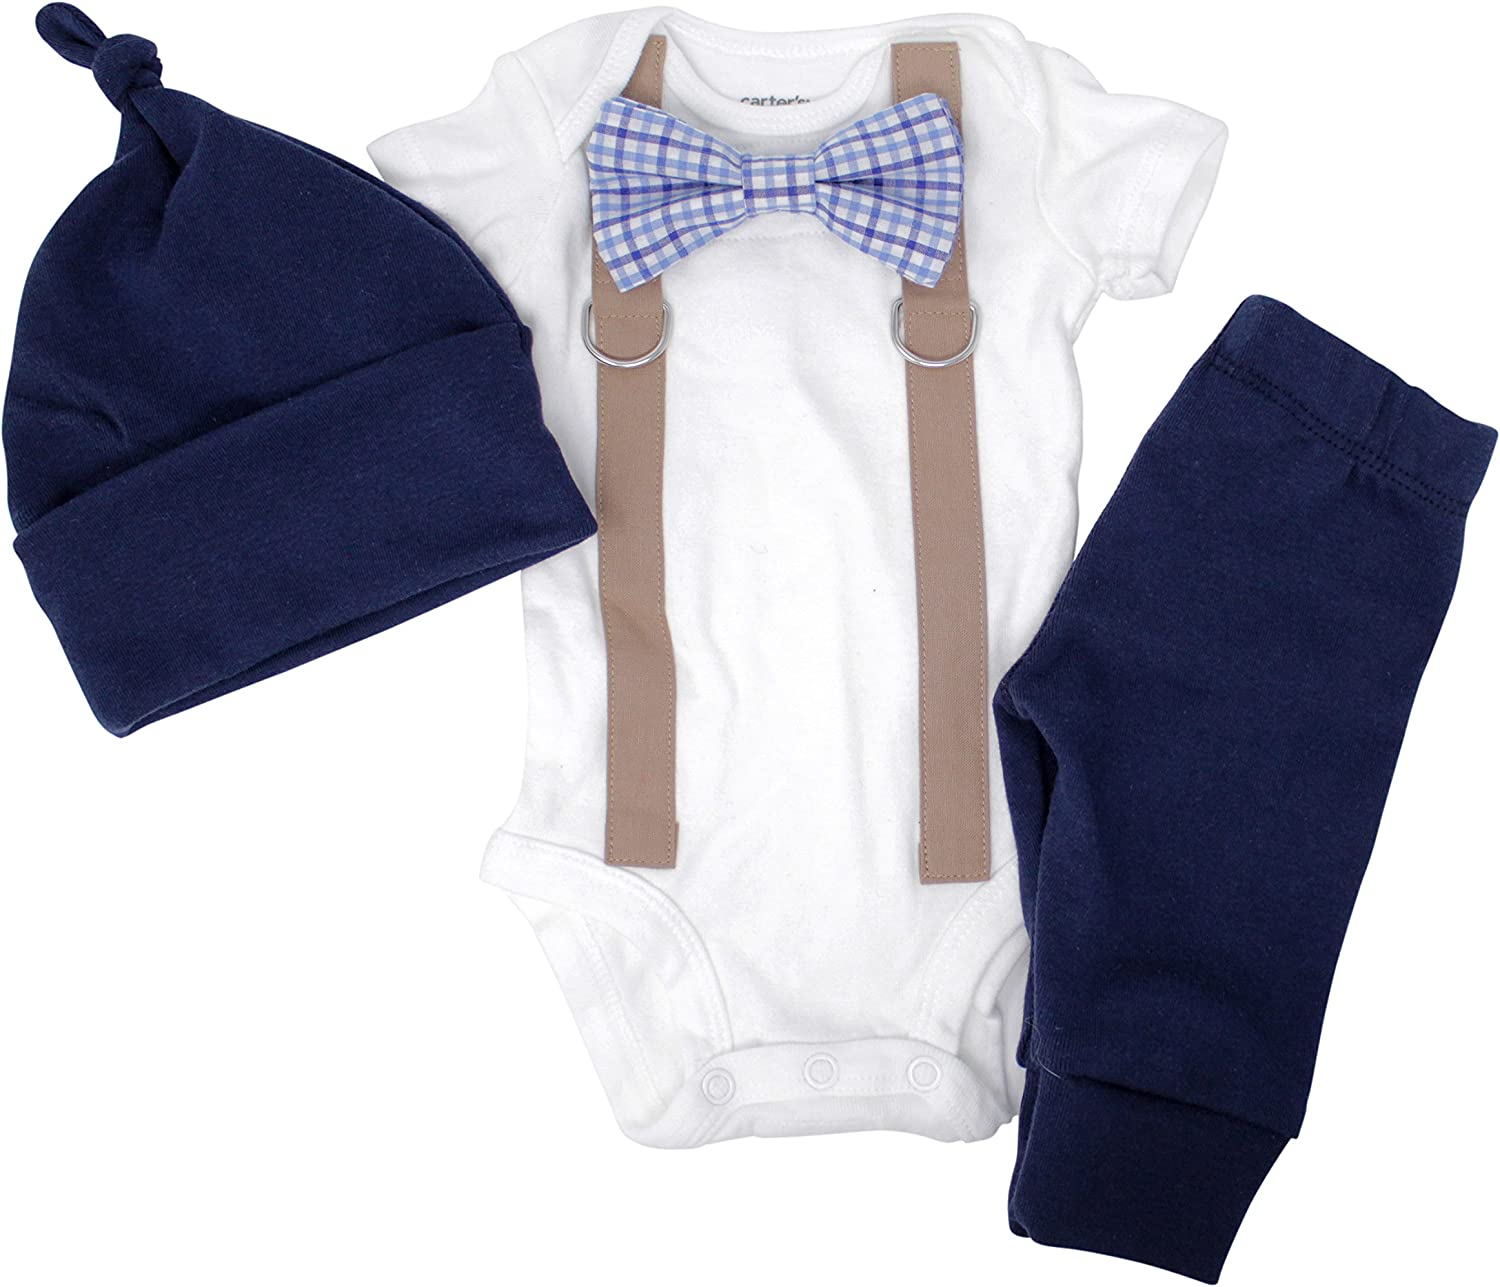 Newborn Boy Coming Home Outfit. Navy & Brown Bow tie and Suspender Take Home Set